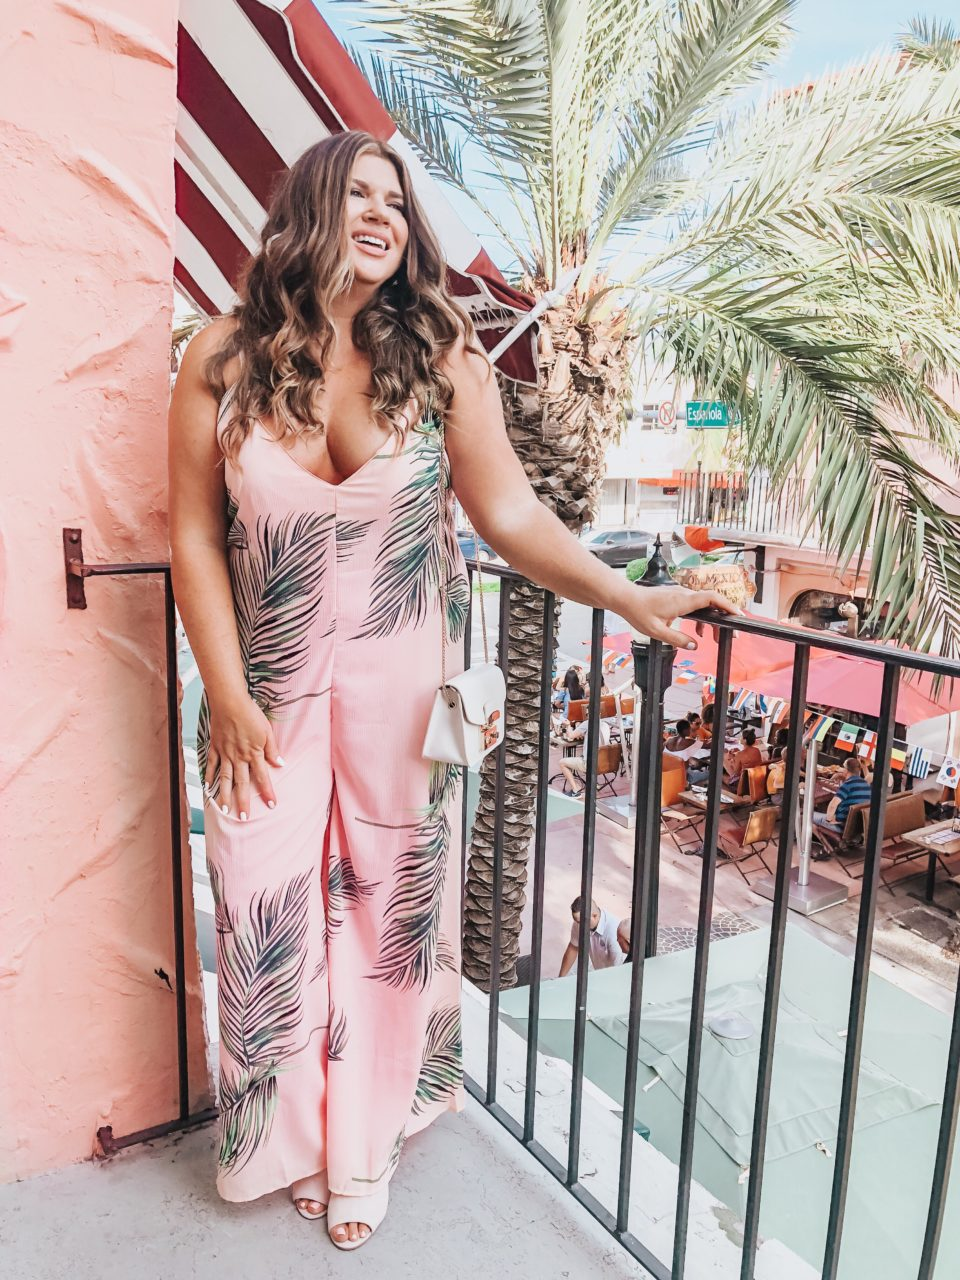 On Espanola Way - South Beach Miami - Pink Palm Jumpsuit